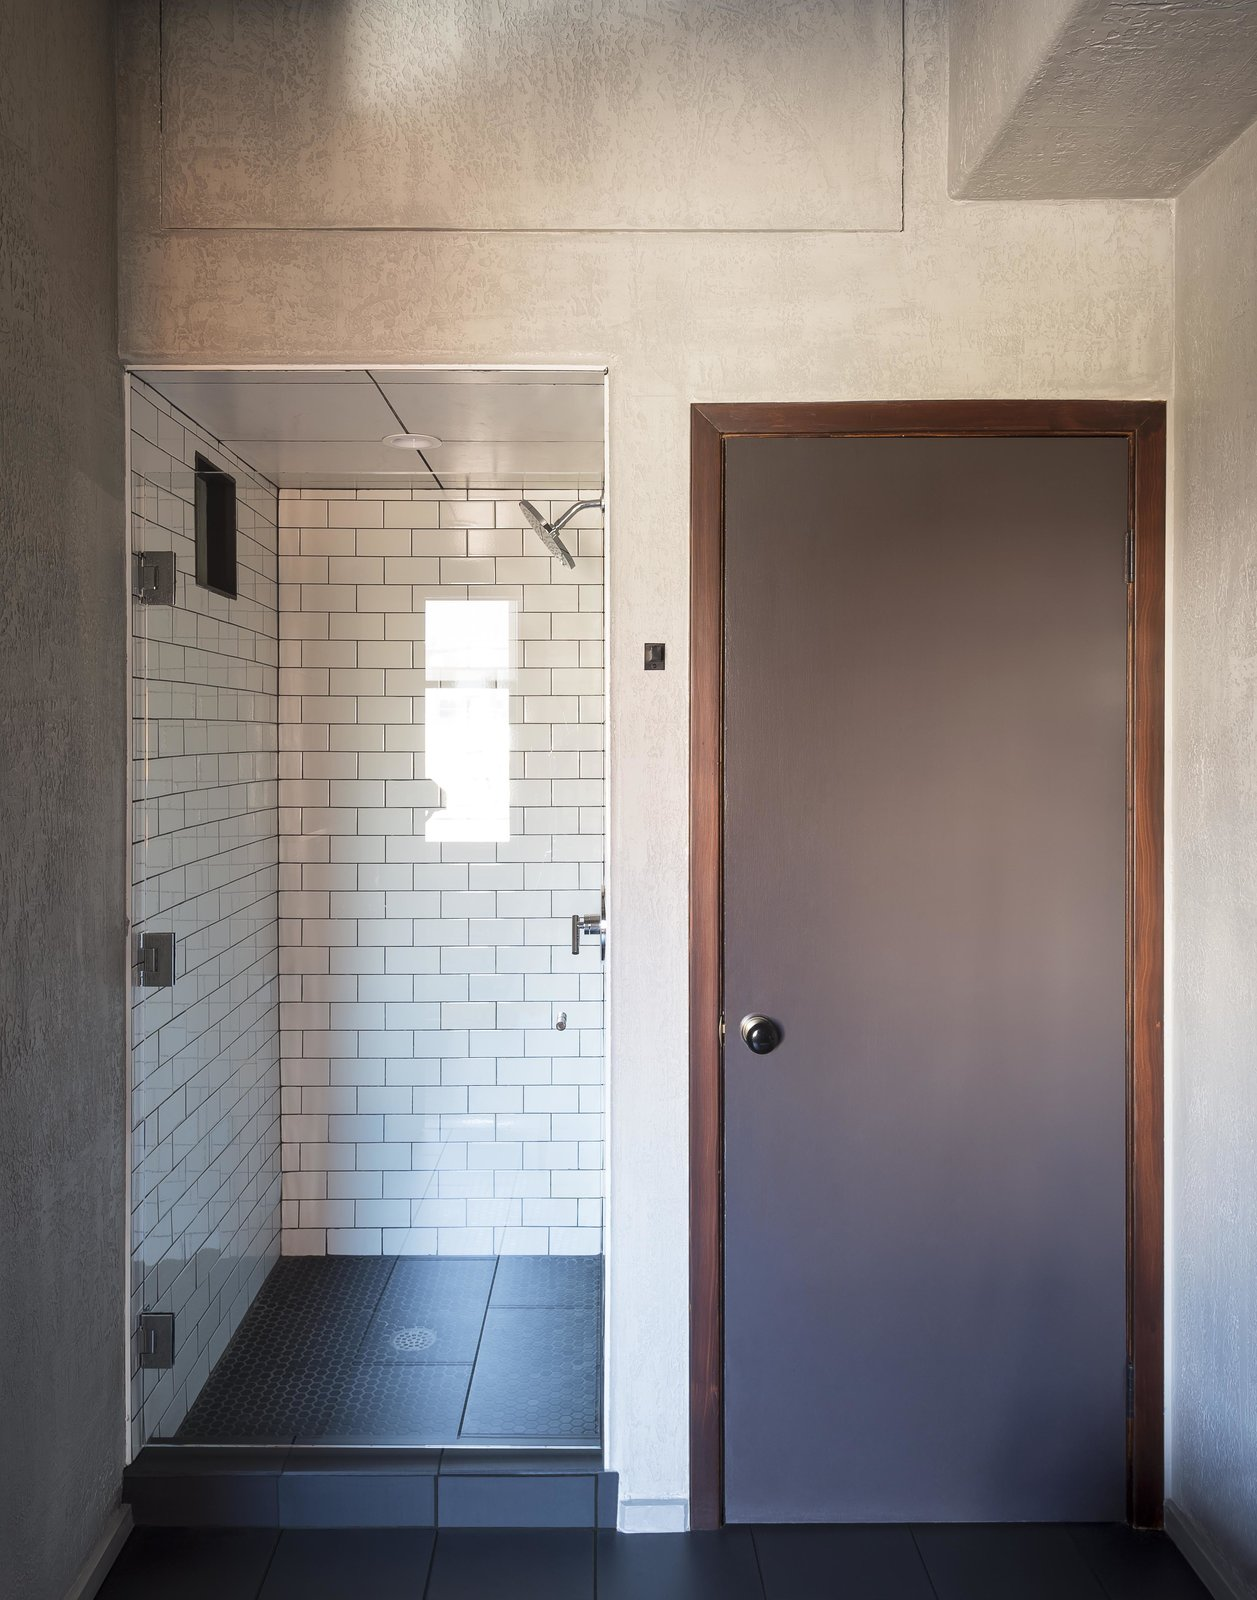 Tagged: Bath Room, Ceiling Lighting, Subway Tile Wall, One Piece Toilet, Enclosed Shower, Ceramic Tile Floor, and Stone Counter.  Mulherin's Hotel by Daniel Olsovsky